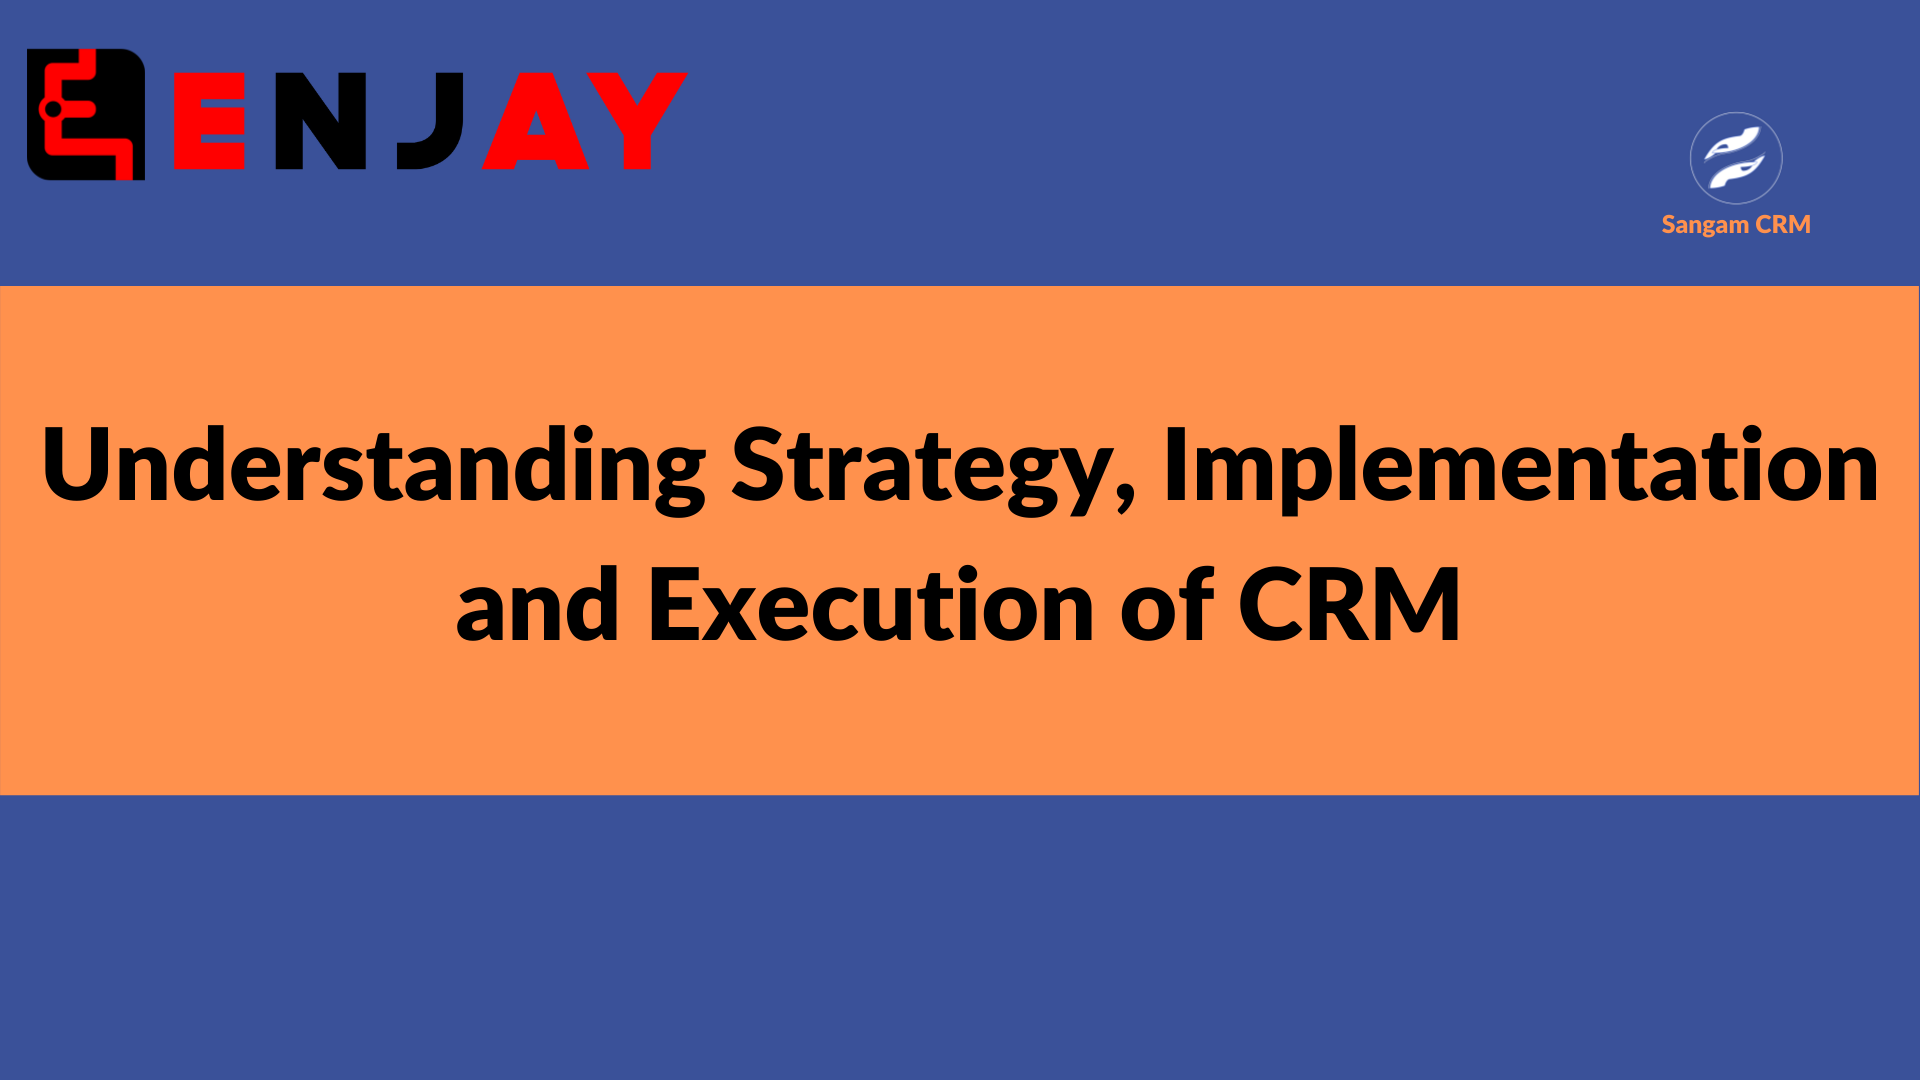 Understanding Strategy, Implementation and Execution of CRM